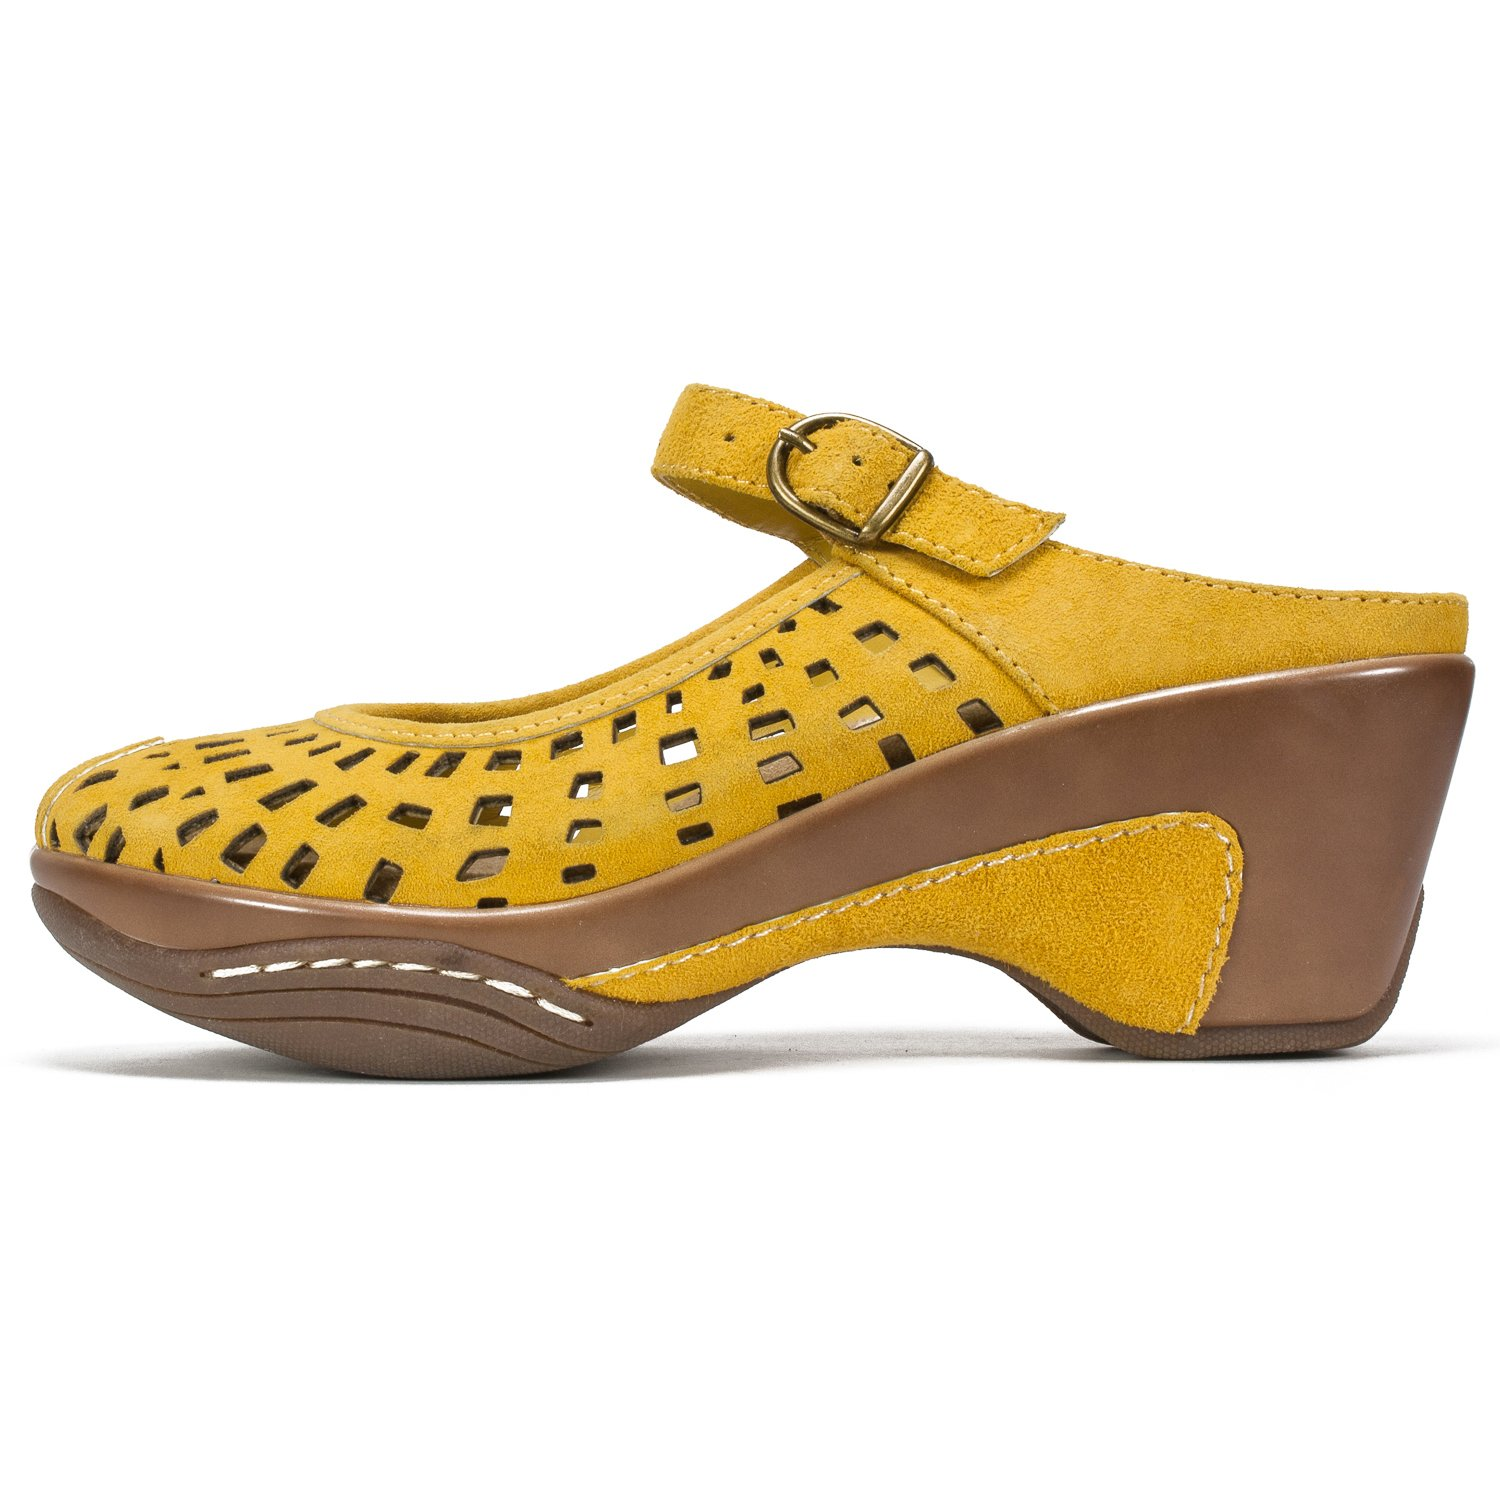 WHITE MOUNTAIN Shoes MARVY Womens Mule 8 M W12297-711-8 Mustard//Suede